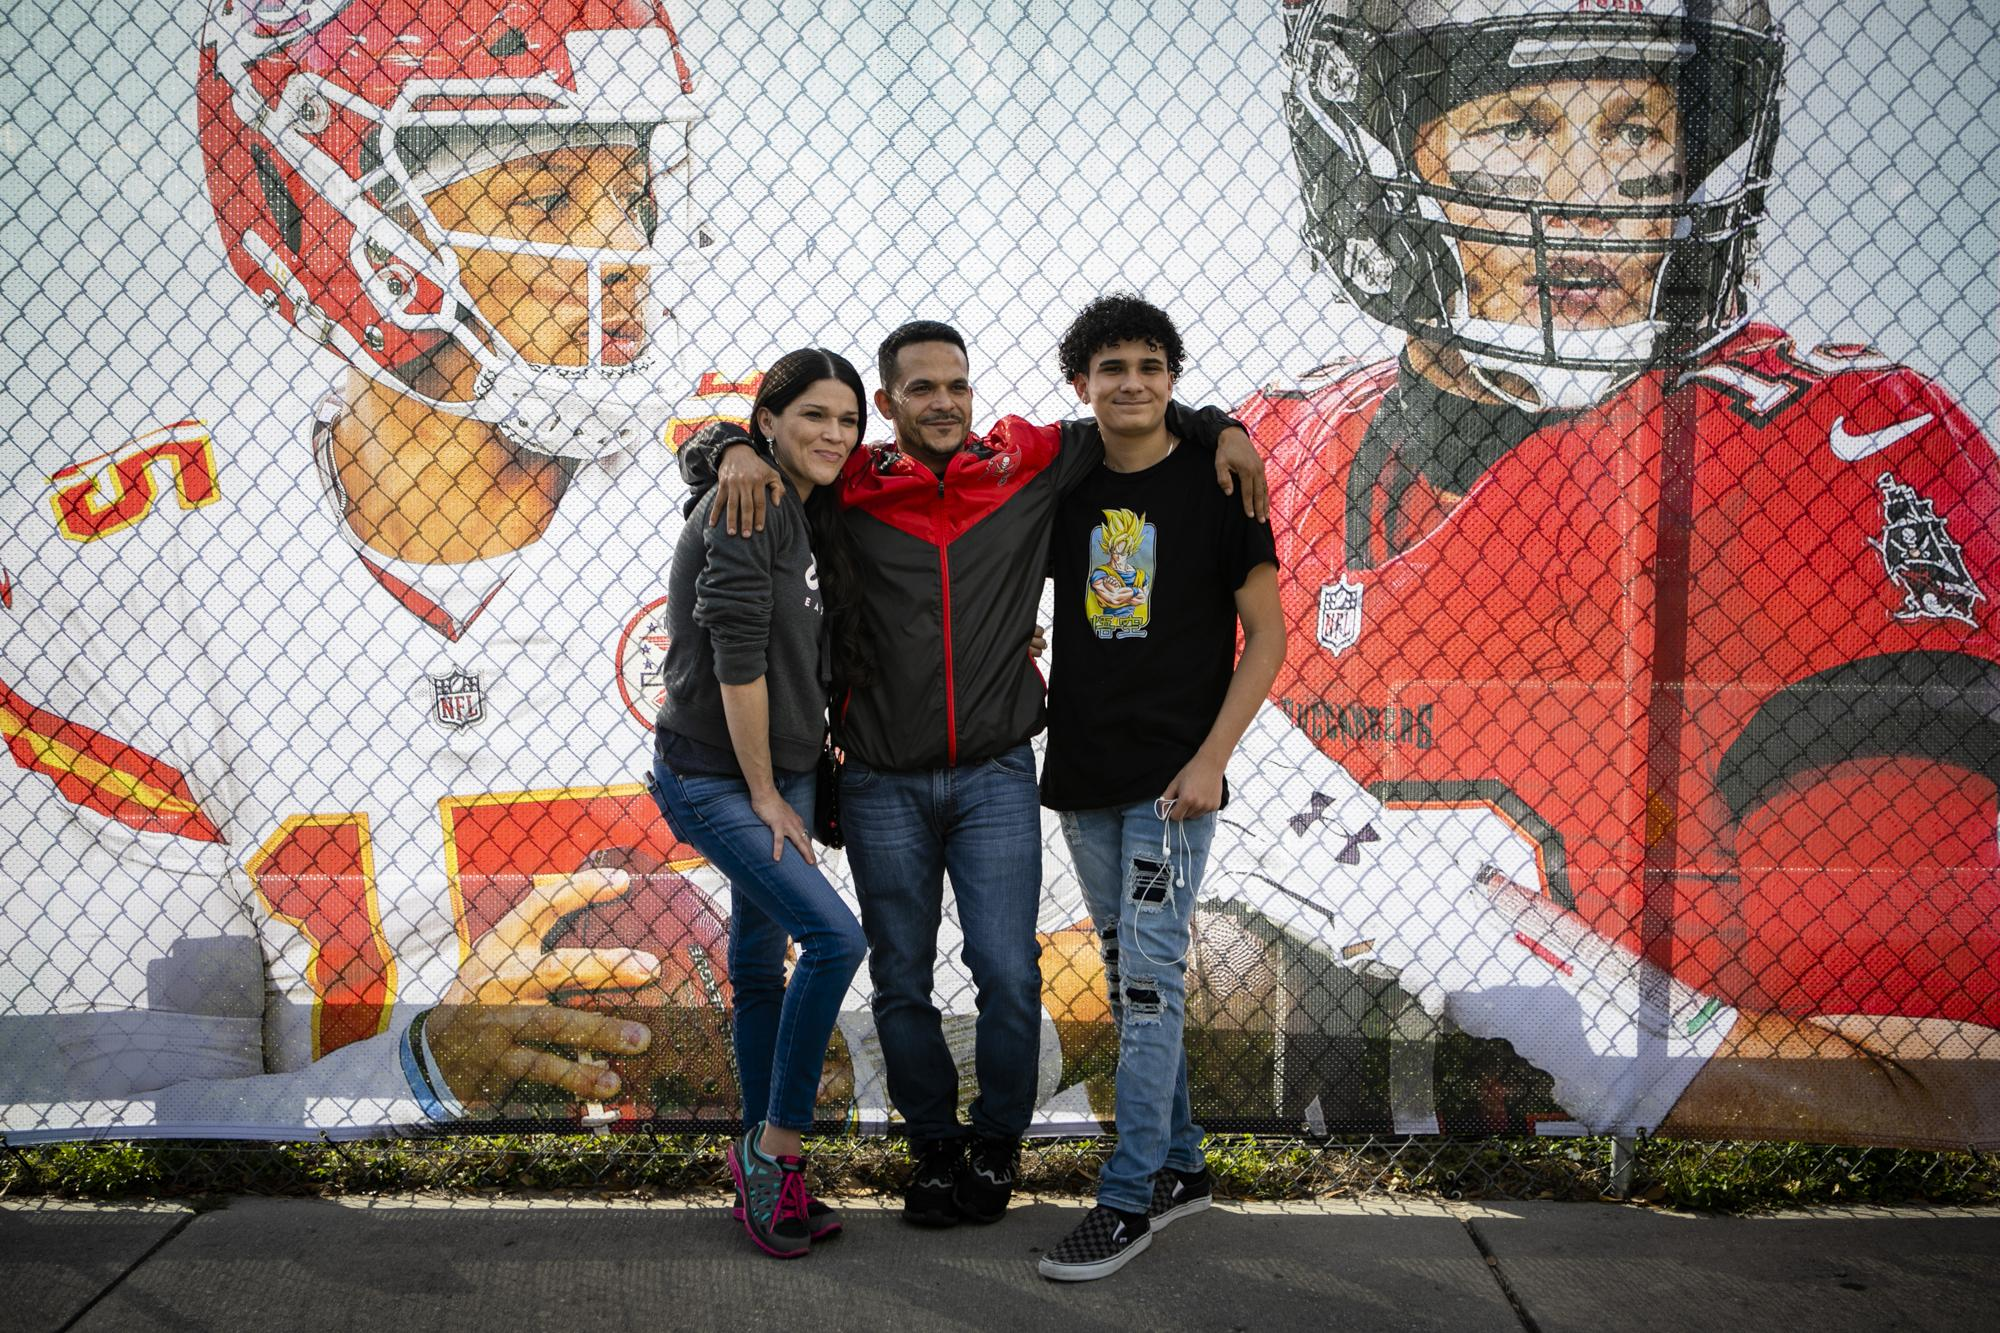 FLORIDA, USA - FEBRUARY 06: Fans pose for a photo outside Raymond James Stadium a day before the Super Bowl LV, in Tampa, Florida, United States on February 06, 2021.